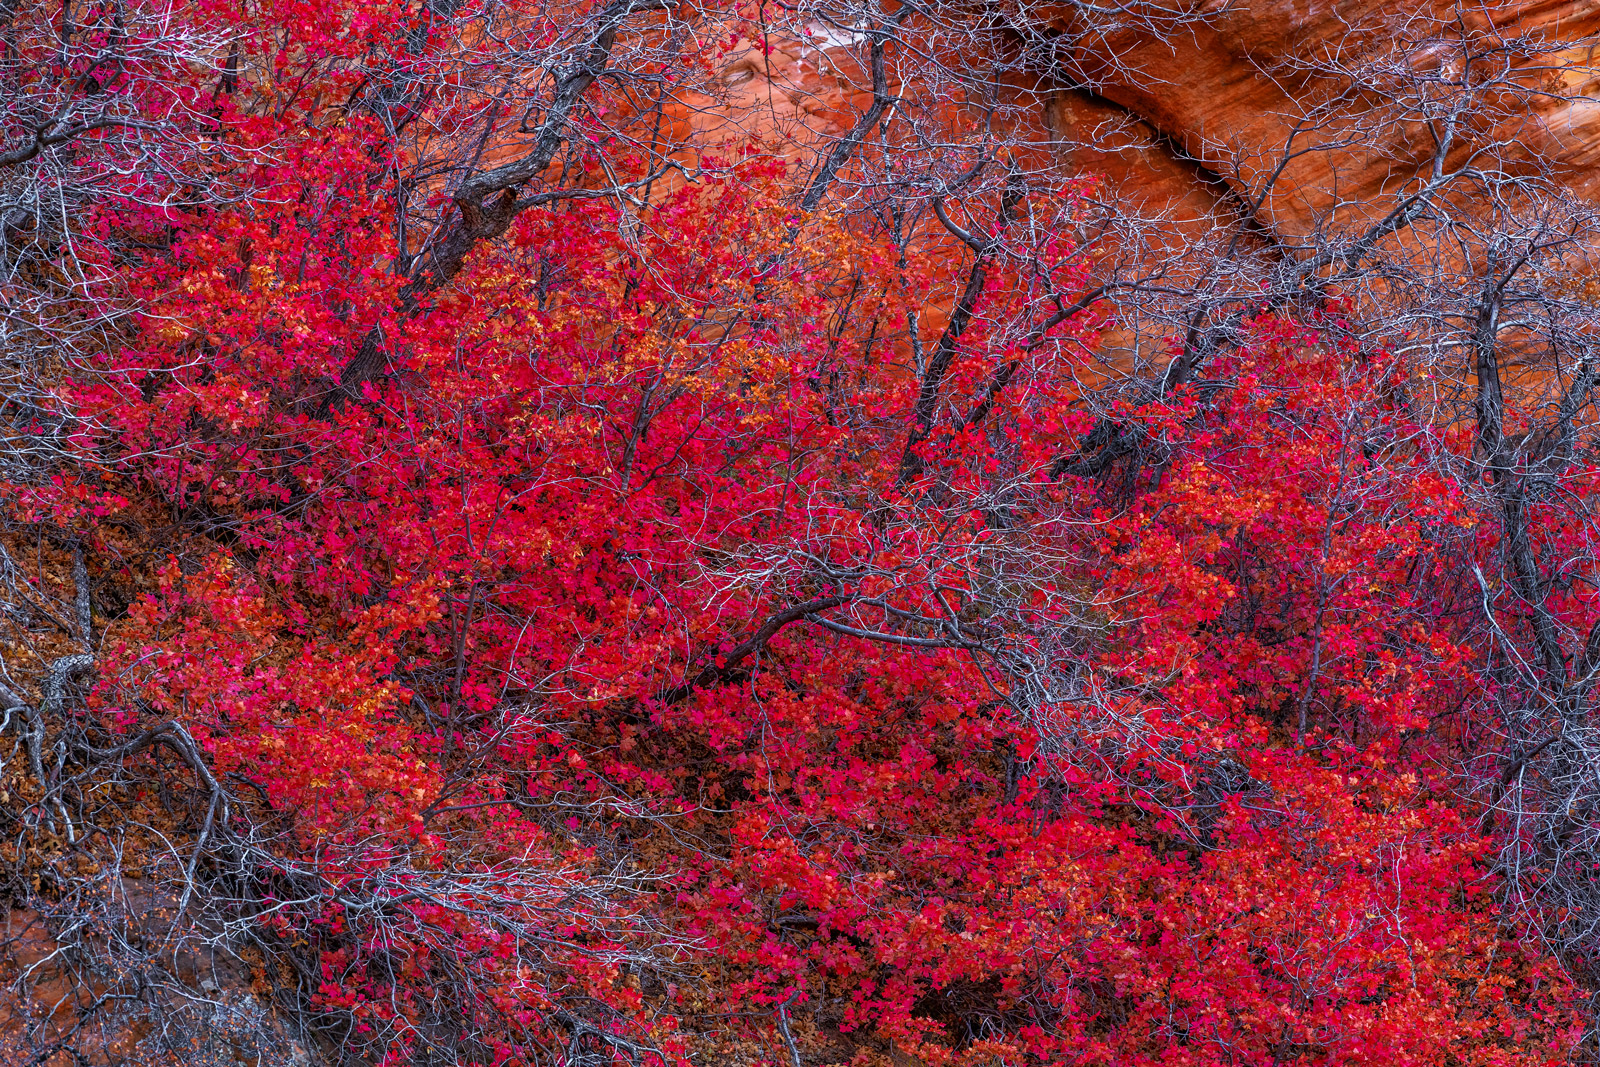 Utah, Zion, National Park, Canyon, Fall, Color, Red, Yellow, Orange, limited edition, photograph, fine art, landscape, photo